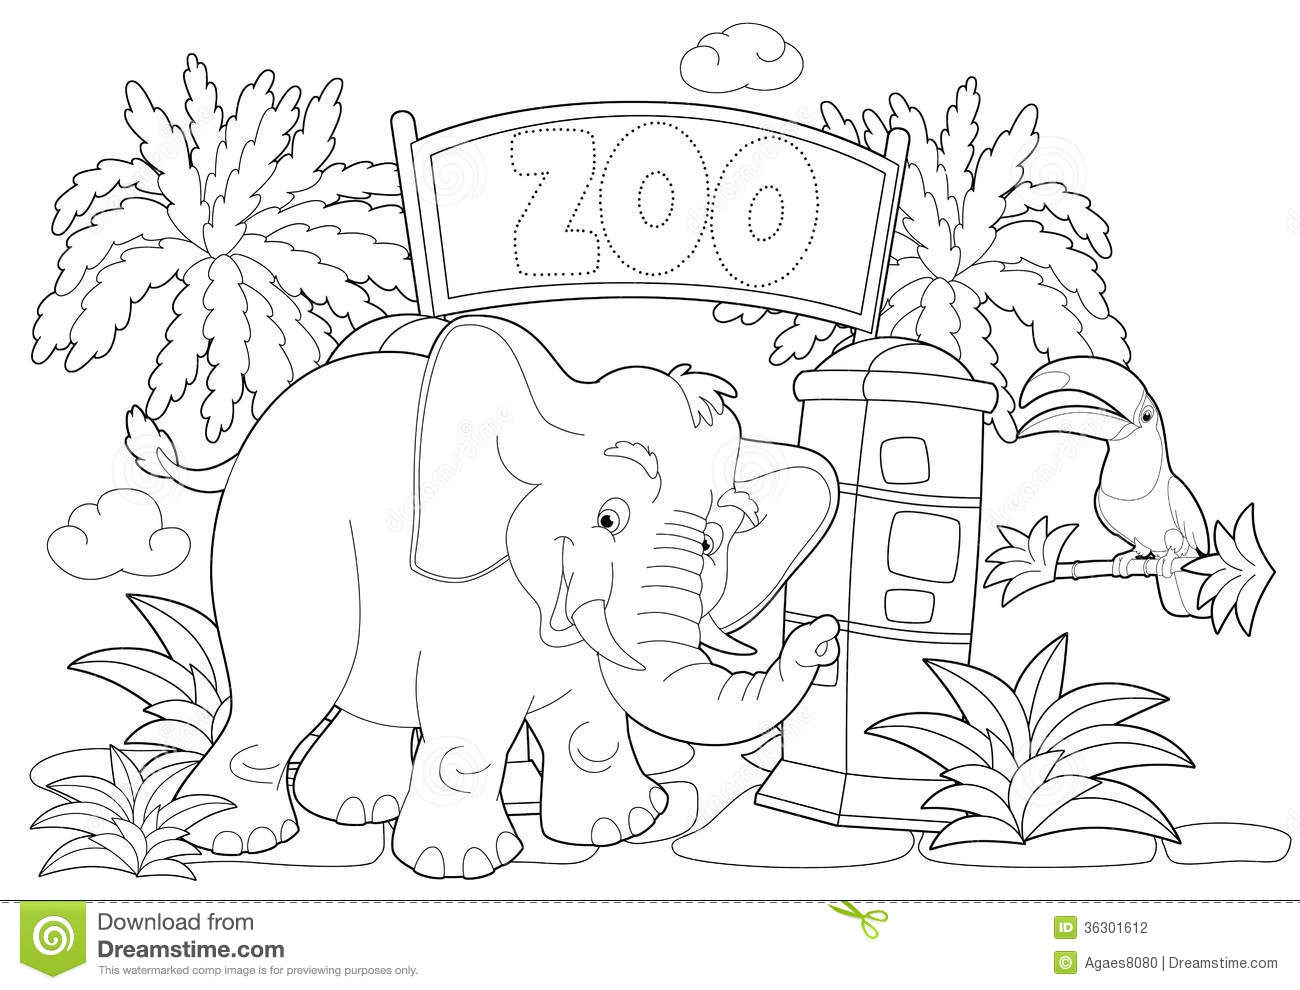 Coloring page - the zoo